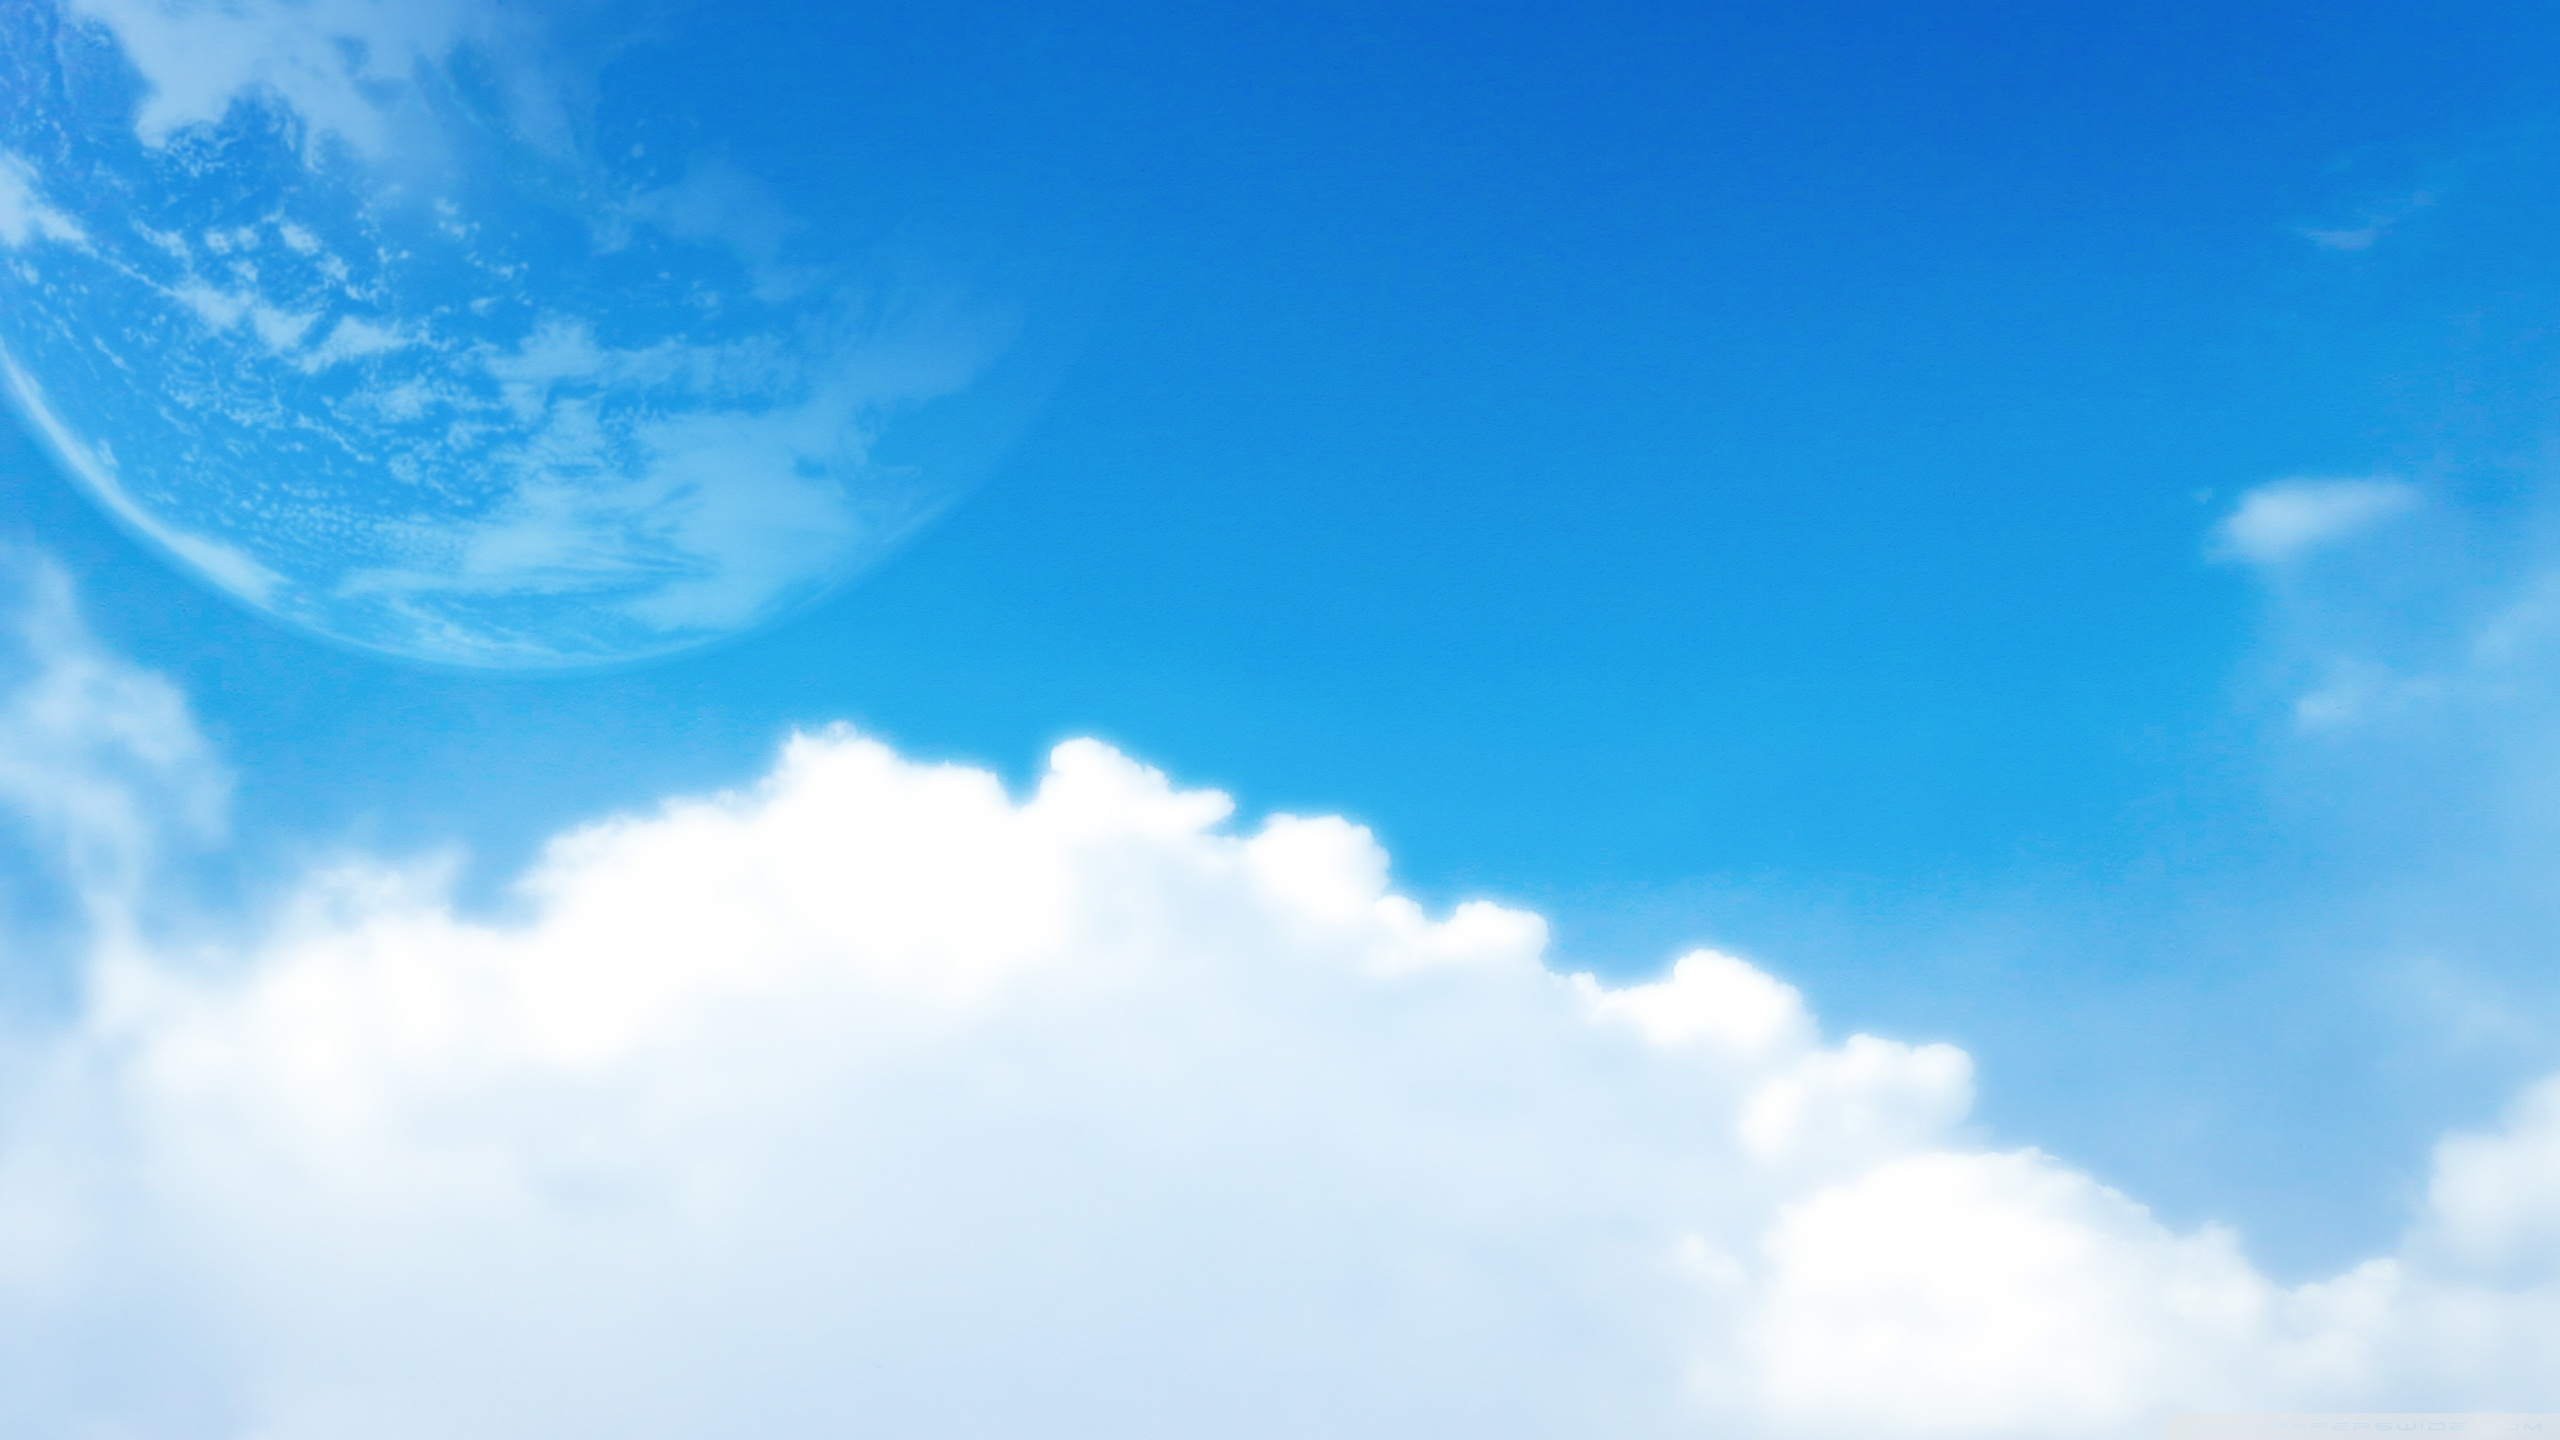 blue sky hd wallpapers free downlaod nature images